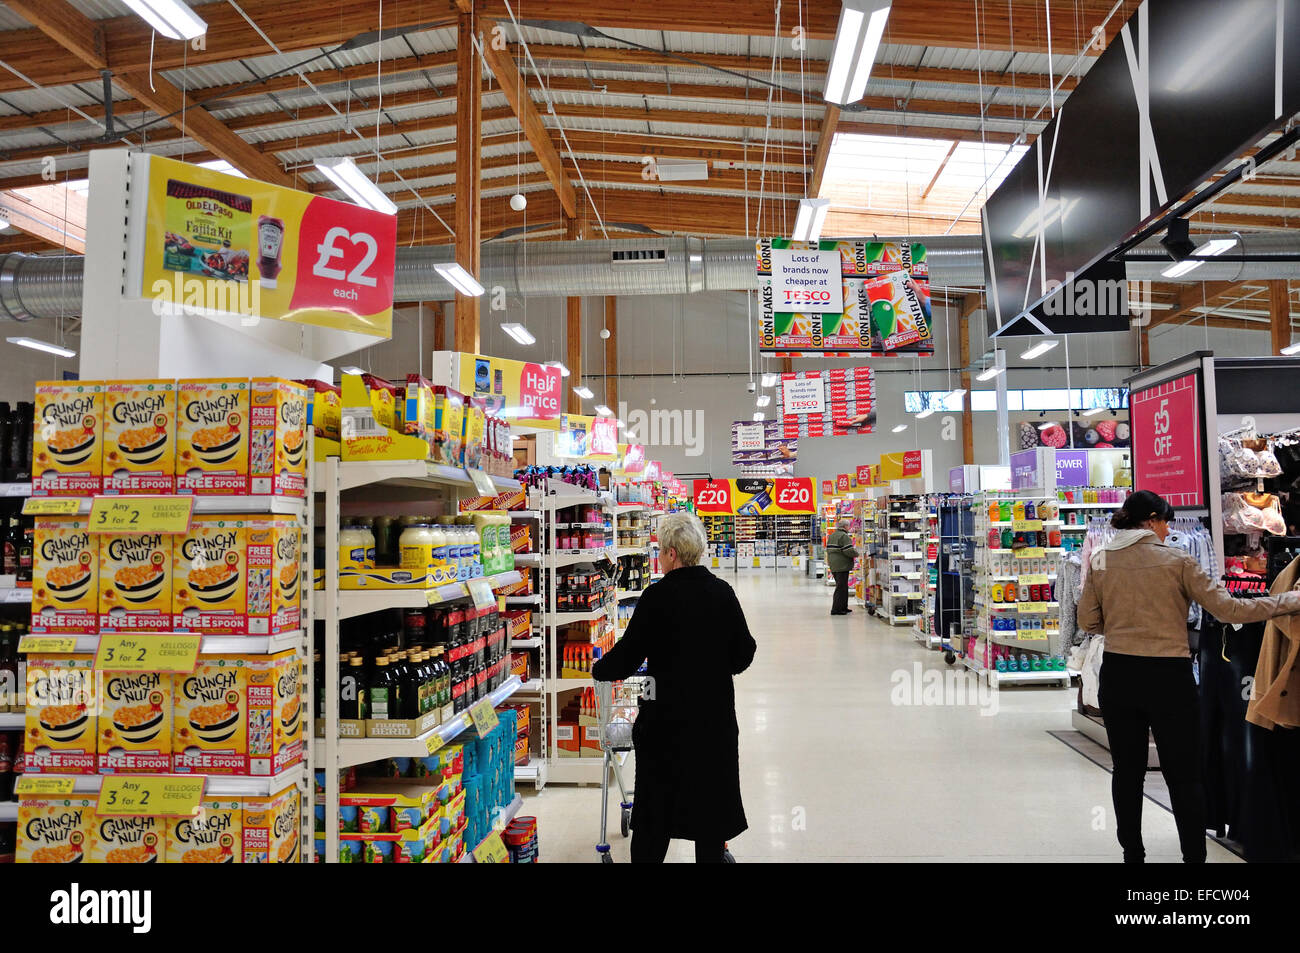 Interior of Tesco Supermarket Taplow, The Bishop Centre, Taplow, Buckinghamshire, England, United Kingdom - Stock Image